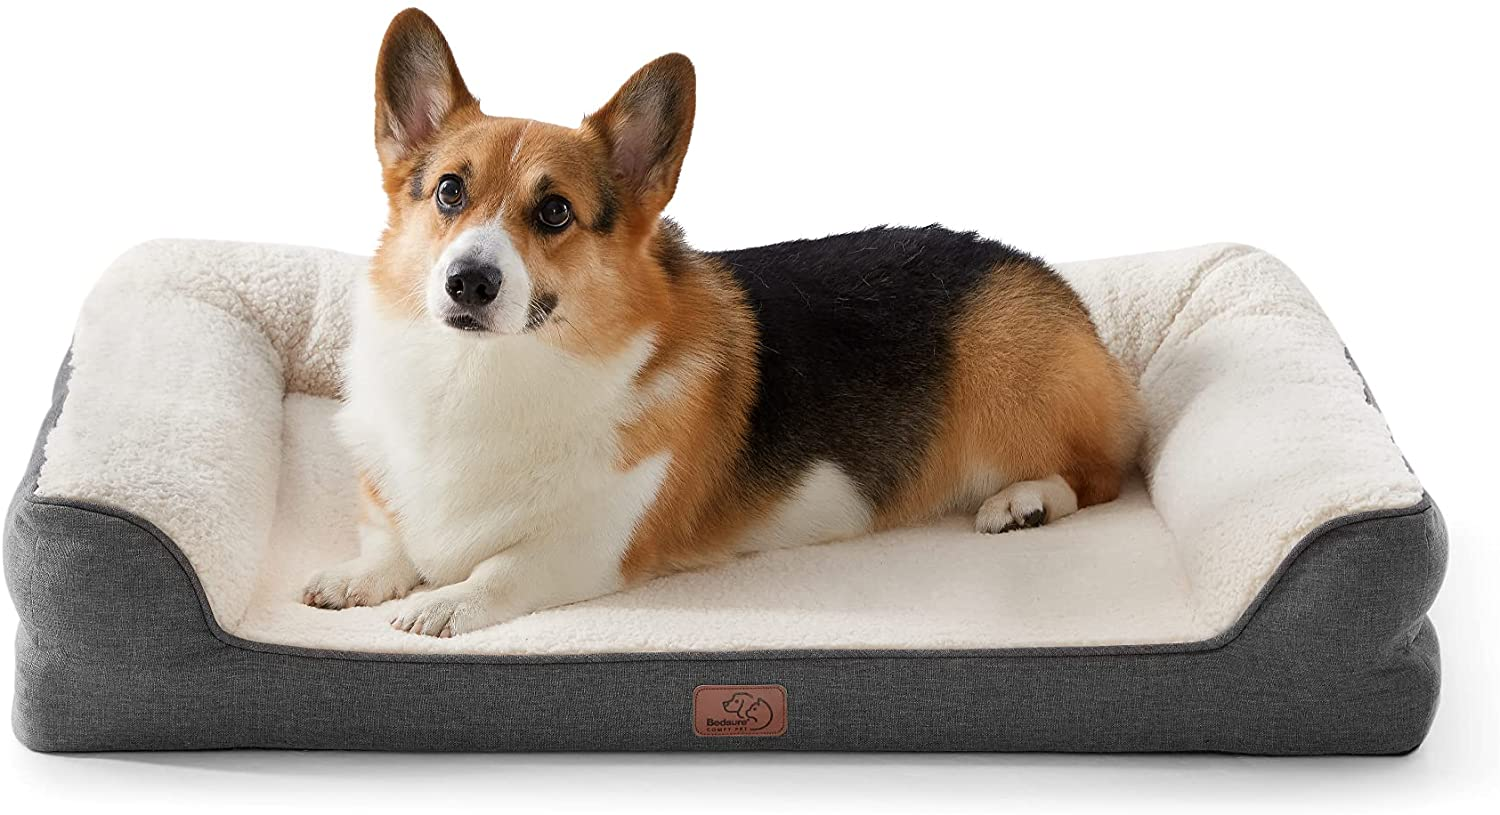 Bedsure announces Sleep Solutions for Pet Health and Wellness